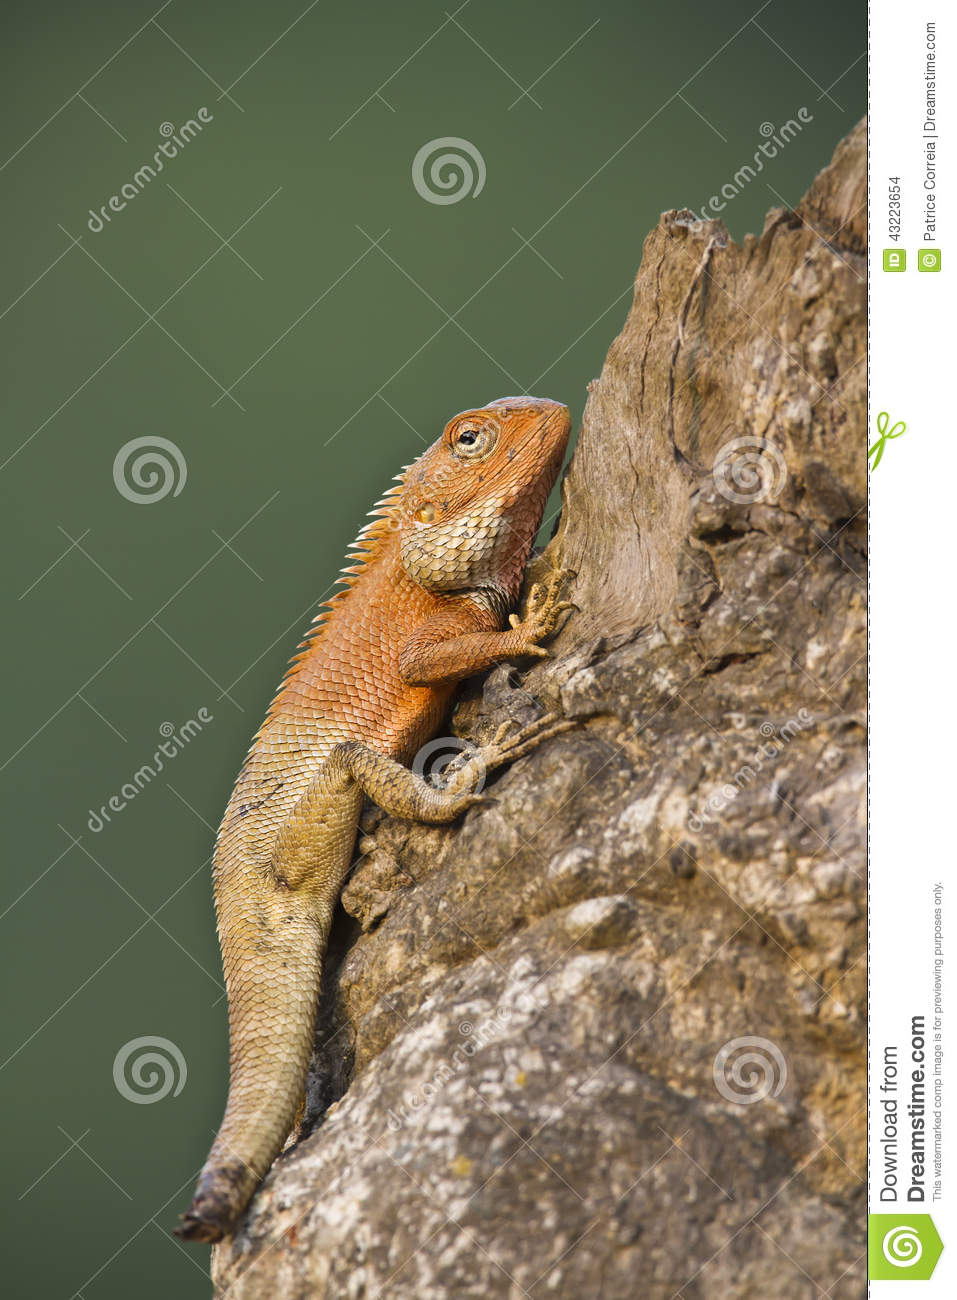 Oriental Garden Lizard With Mutilated Tail Stock Photo - Image of ...